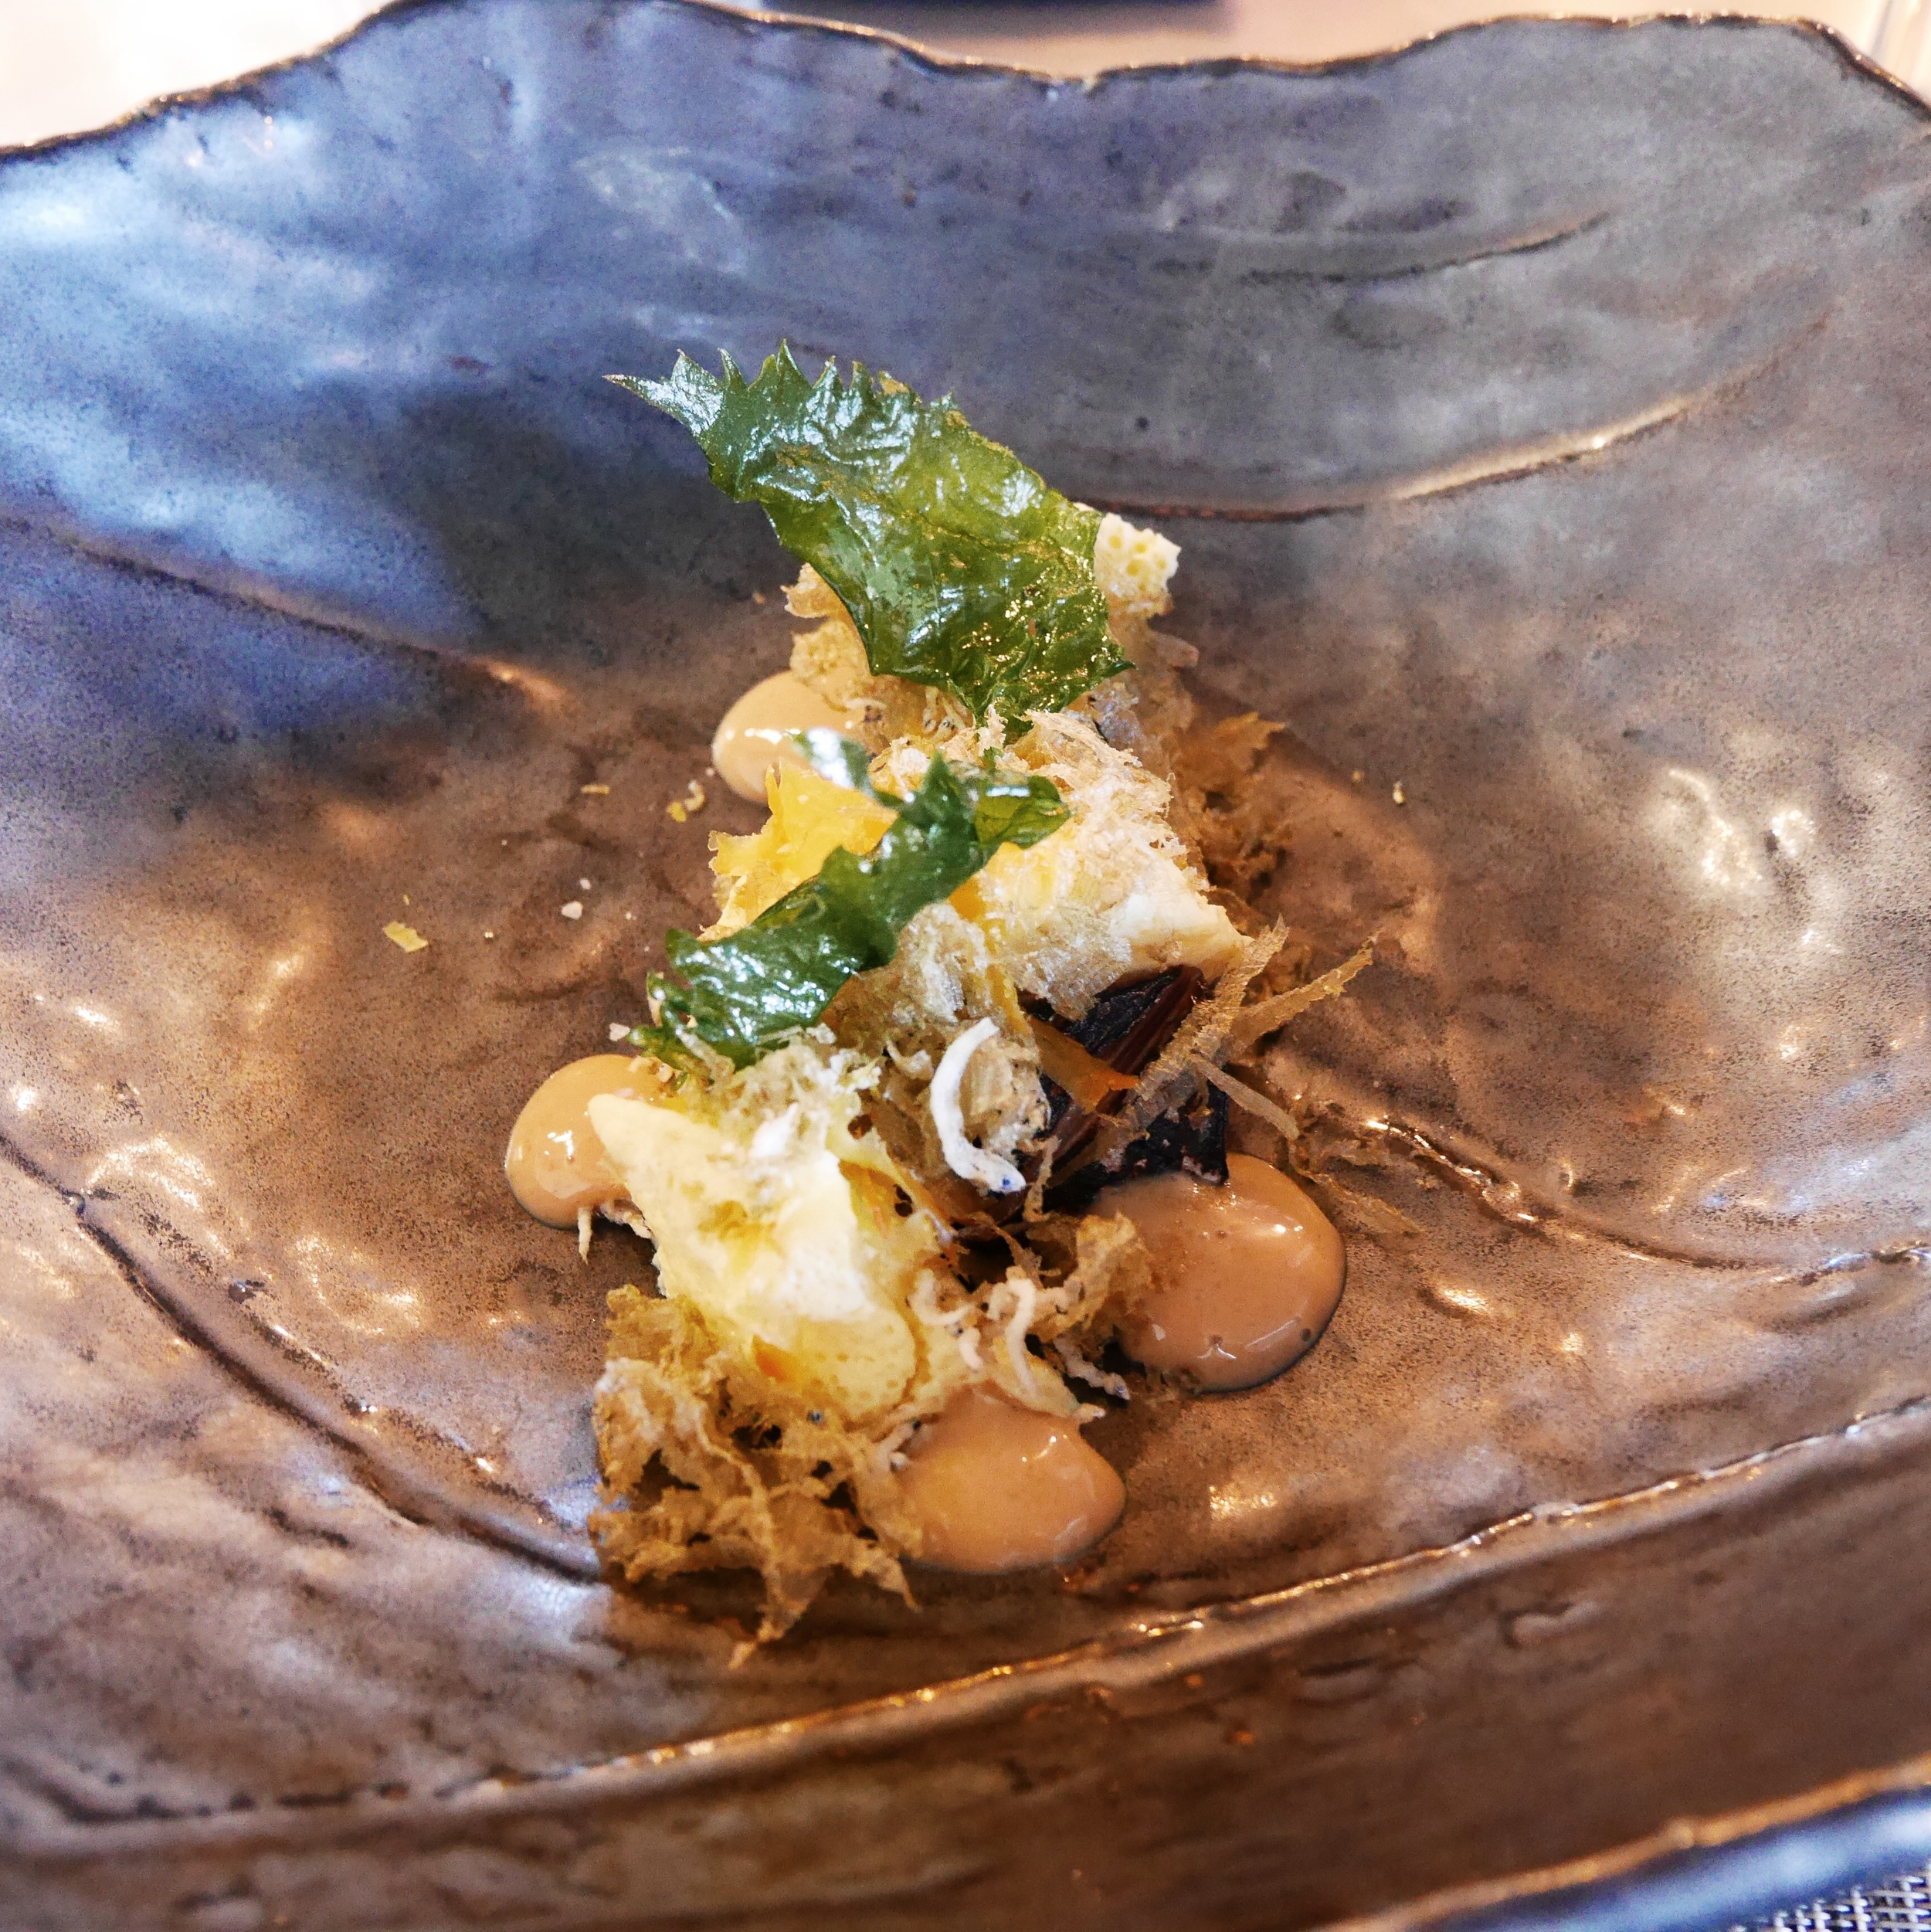 Saba, egg, toasted rice, kombu, ohba leaf